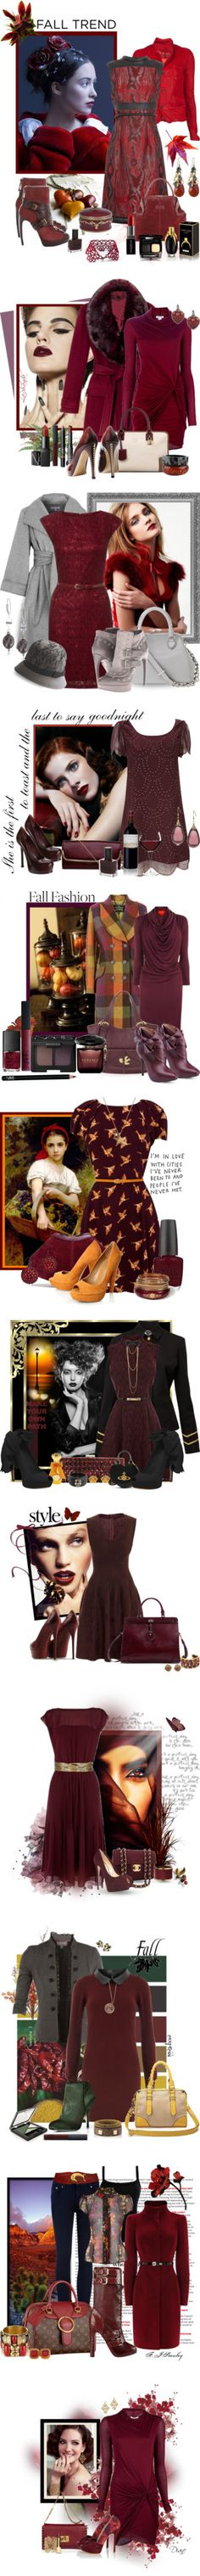 """""""burgandy oxblood maroon"""" by countrycousin ❤ liked on Polyvore"""